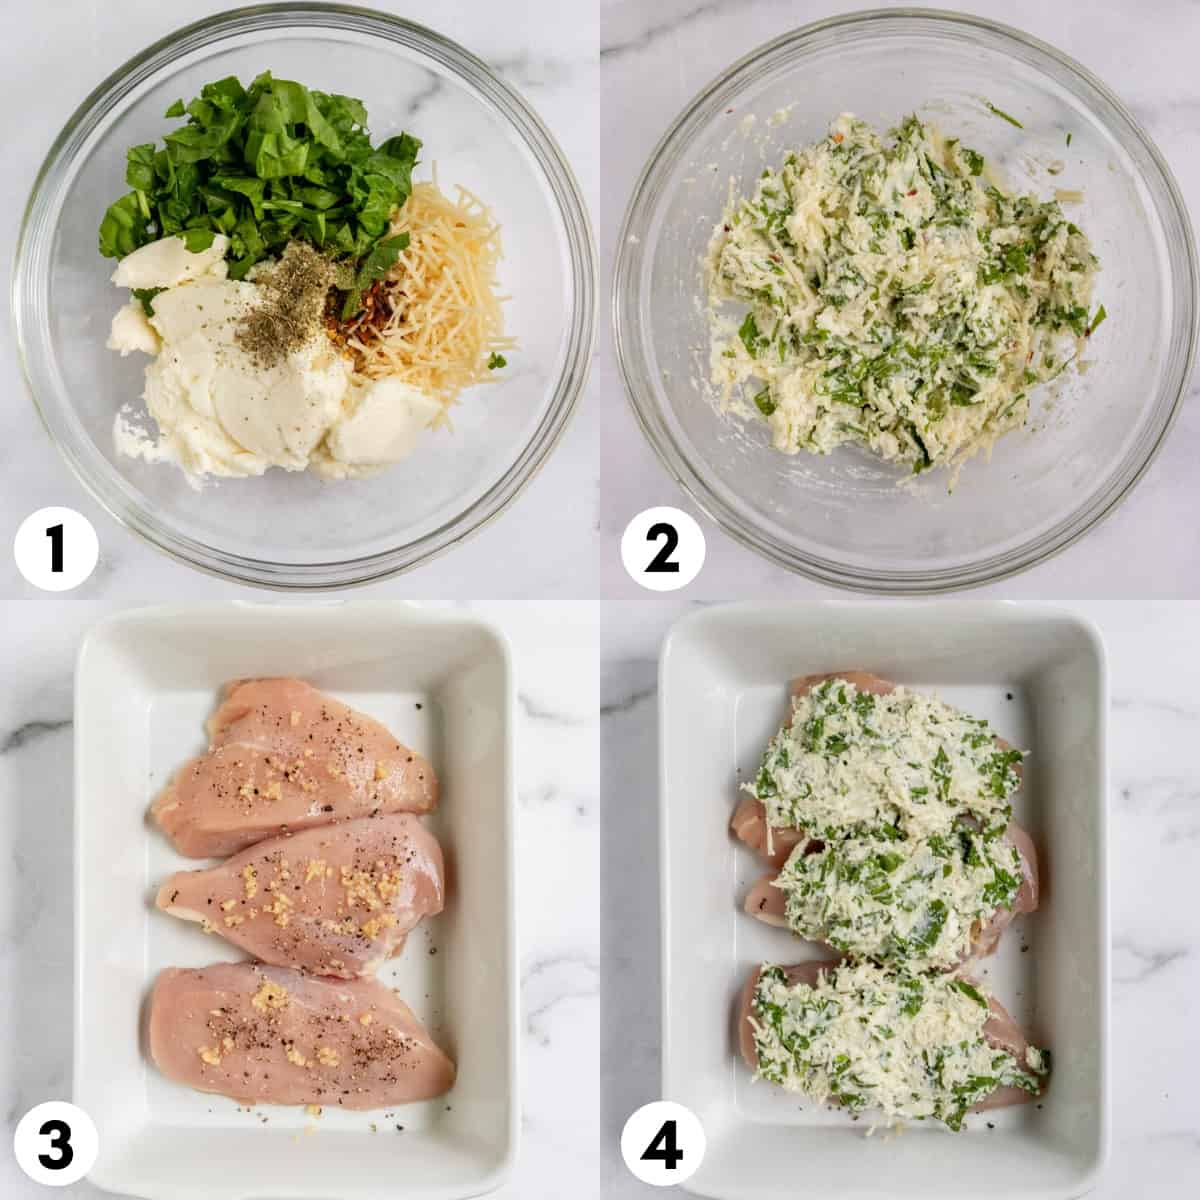 Ricotta, spinach and ingredients in bowl and then spread on chicken in in pan.